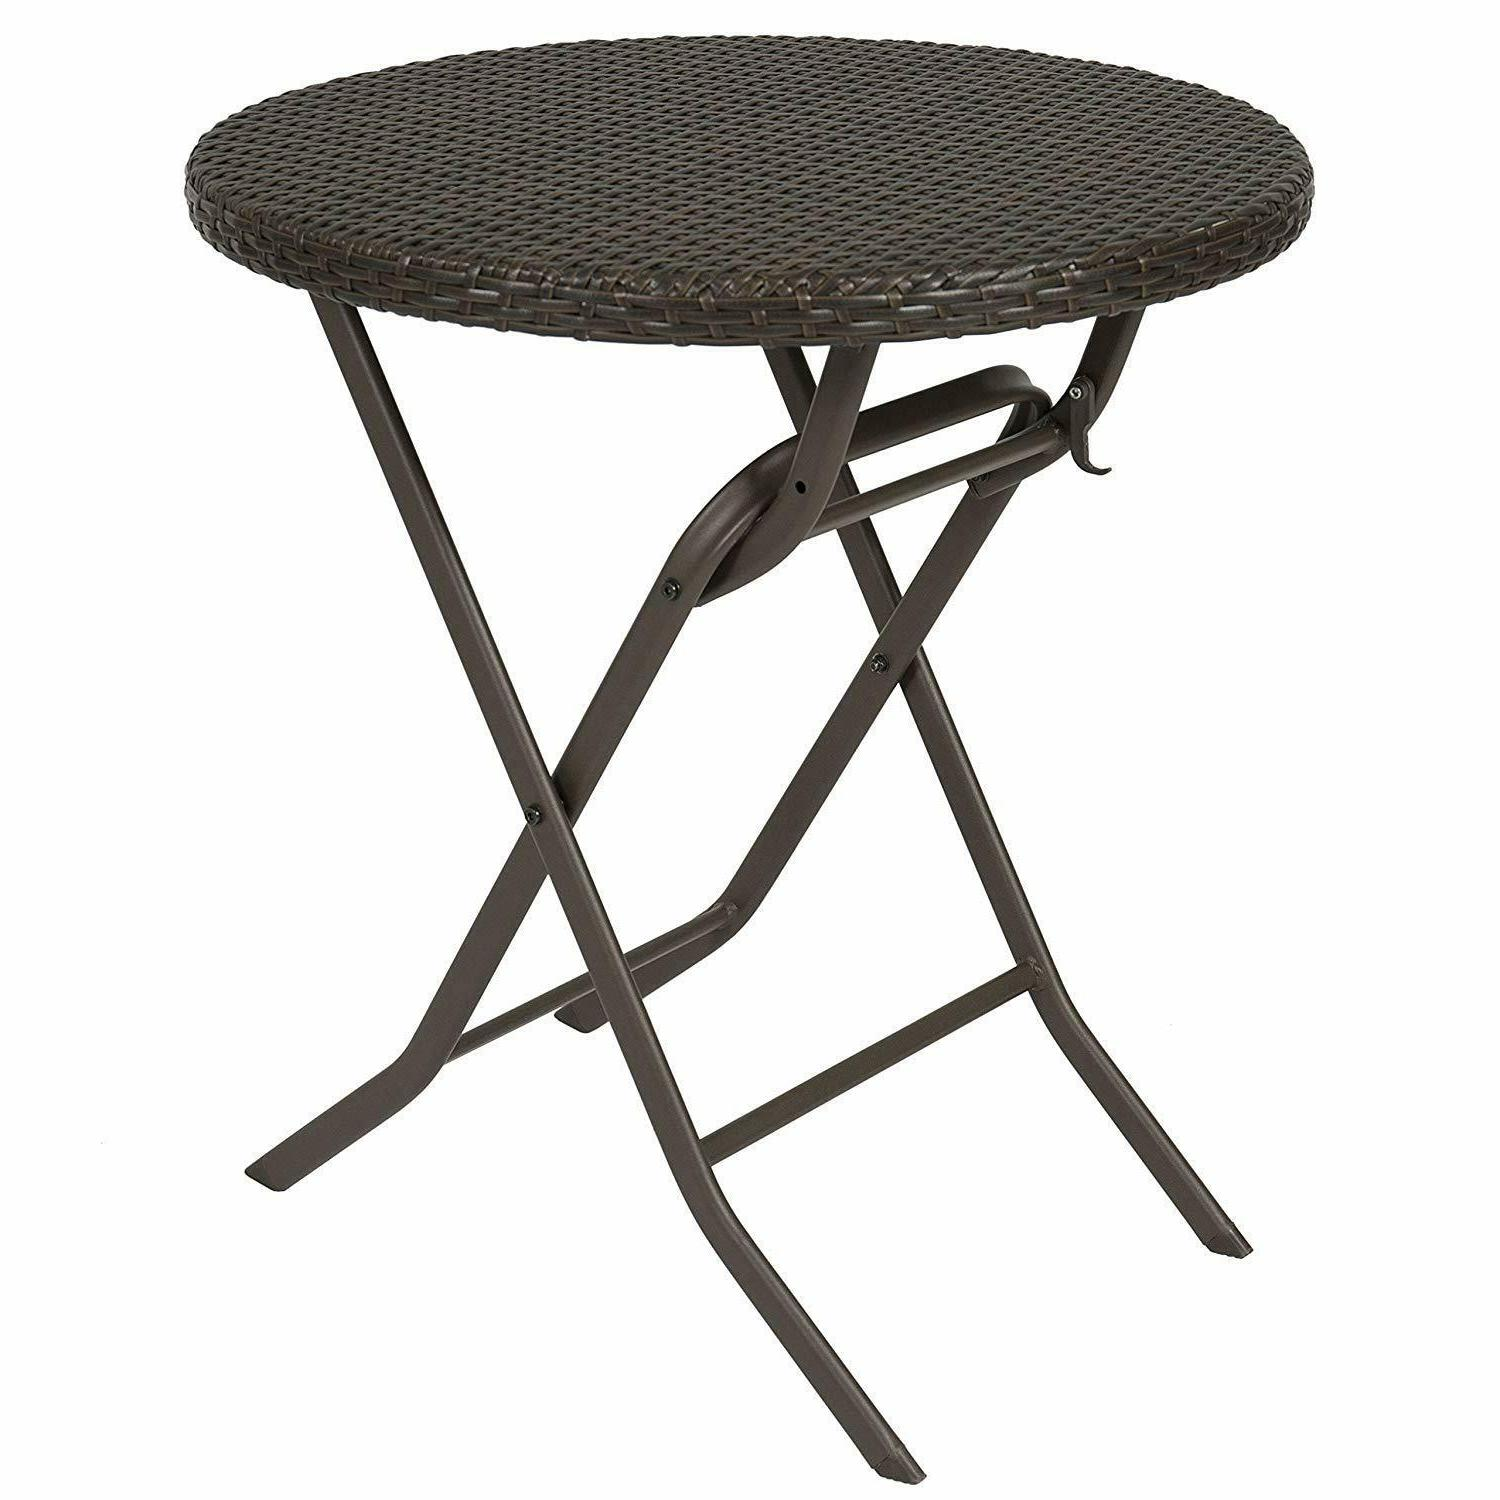 Patio Dining Garden Furniture Chairs